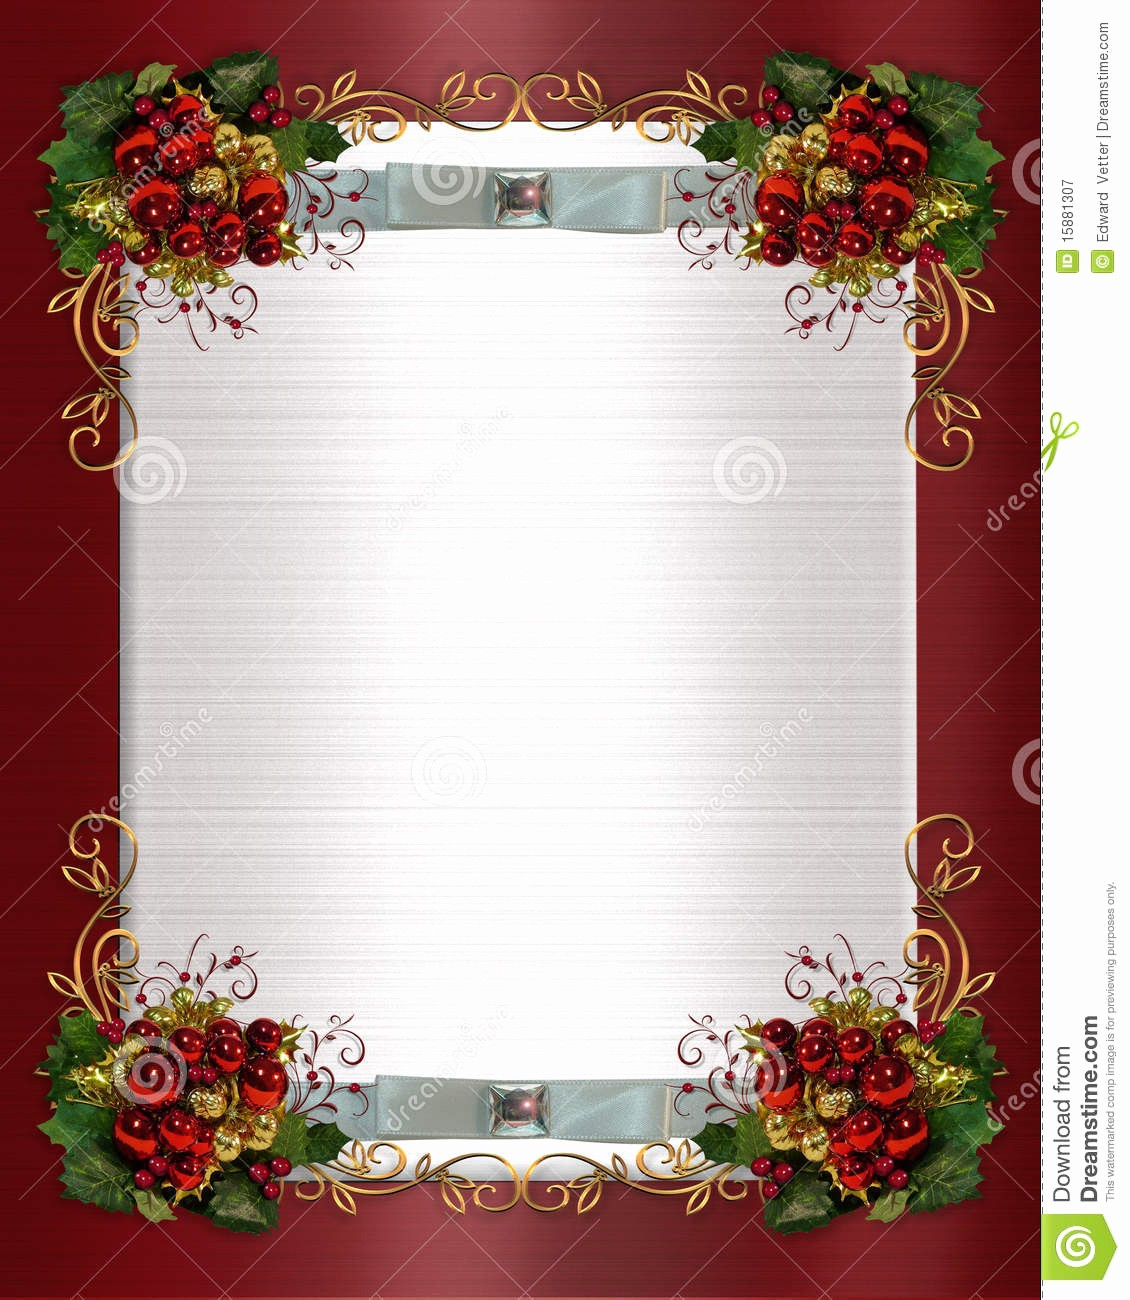 Free Downloadable Christmas Invitation Templates Lovely Christmas Party Invitation Templates Free Download